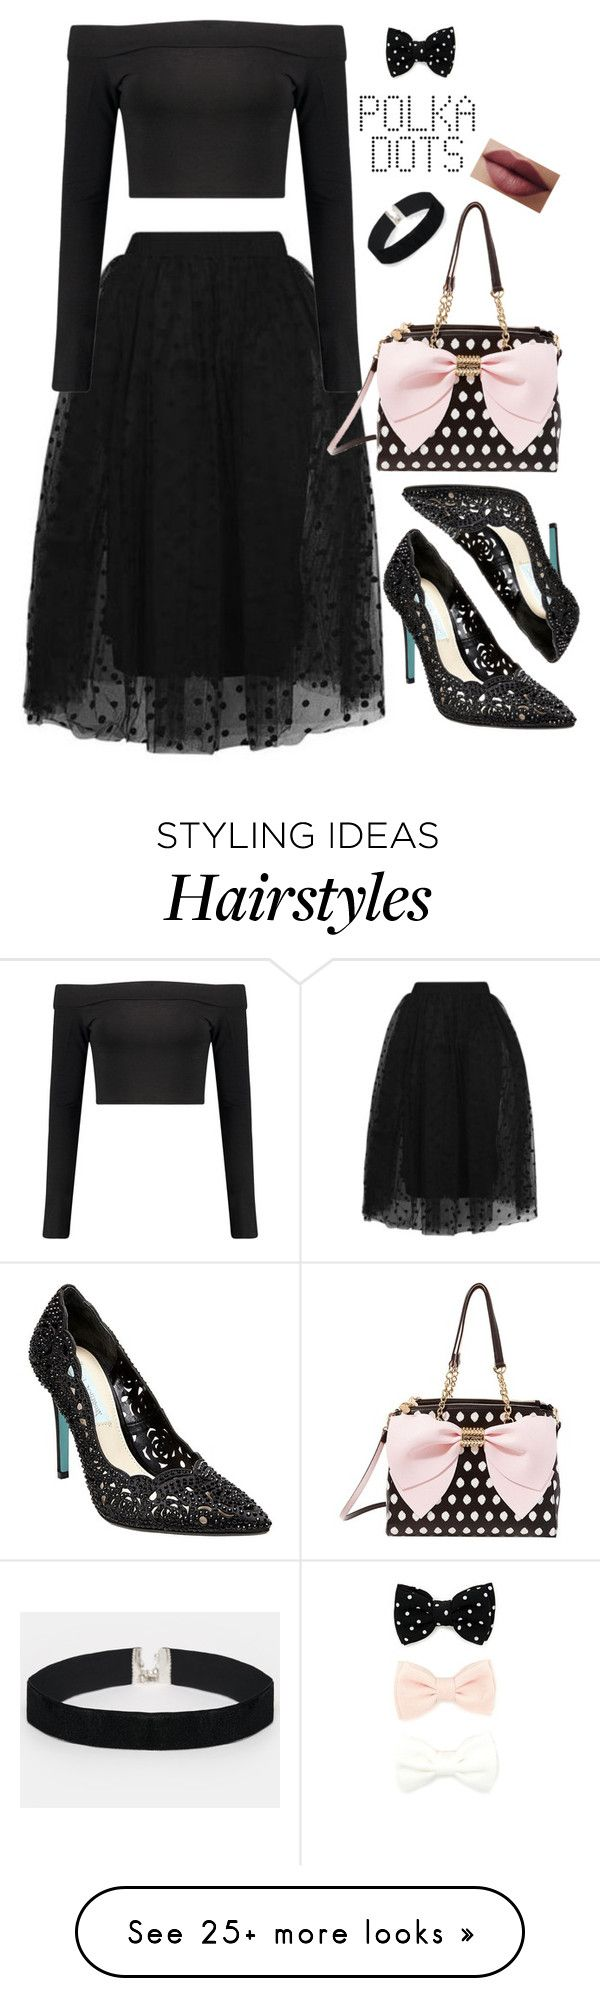 """""""Oh La La"""" by bitty-junkkitty on Polyvore featuring Topshop, Boohoo, Forever 21, ASOS and Betsey Johnson"""